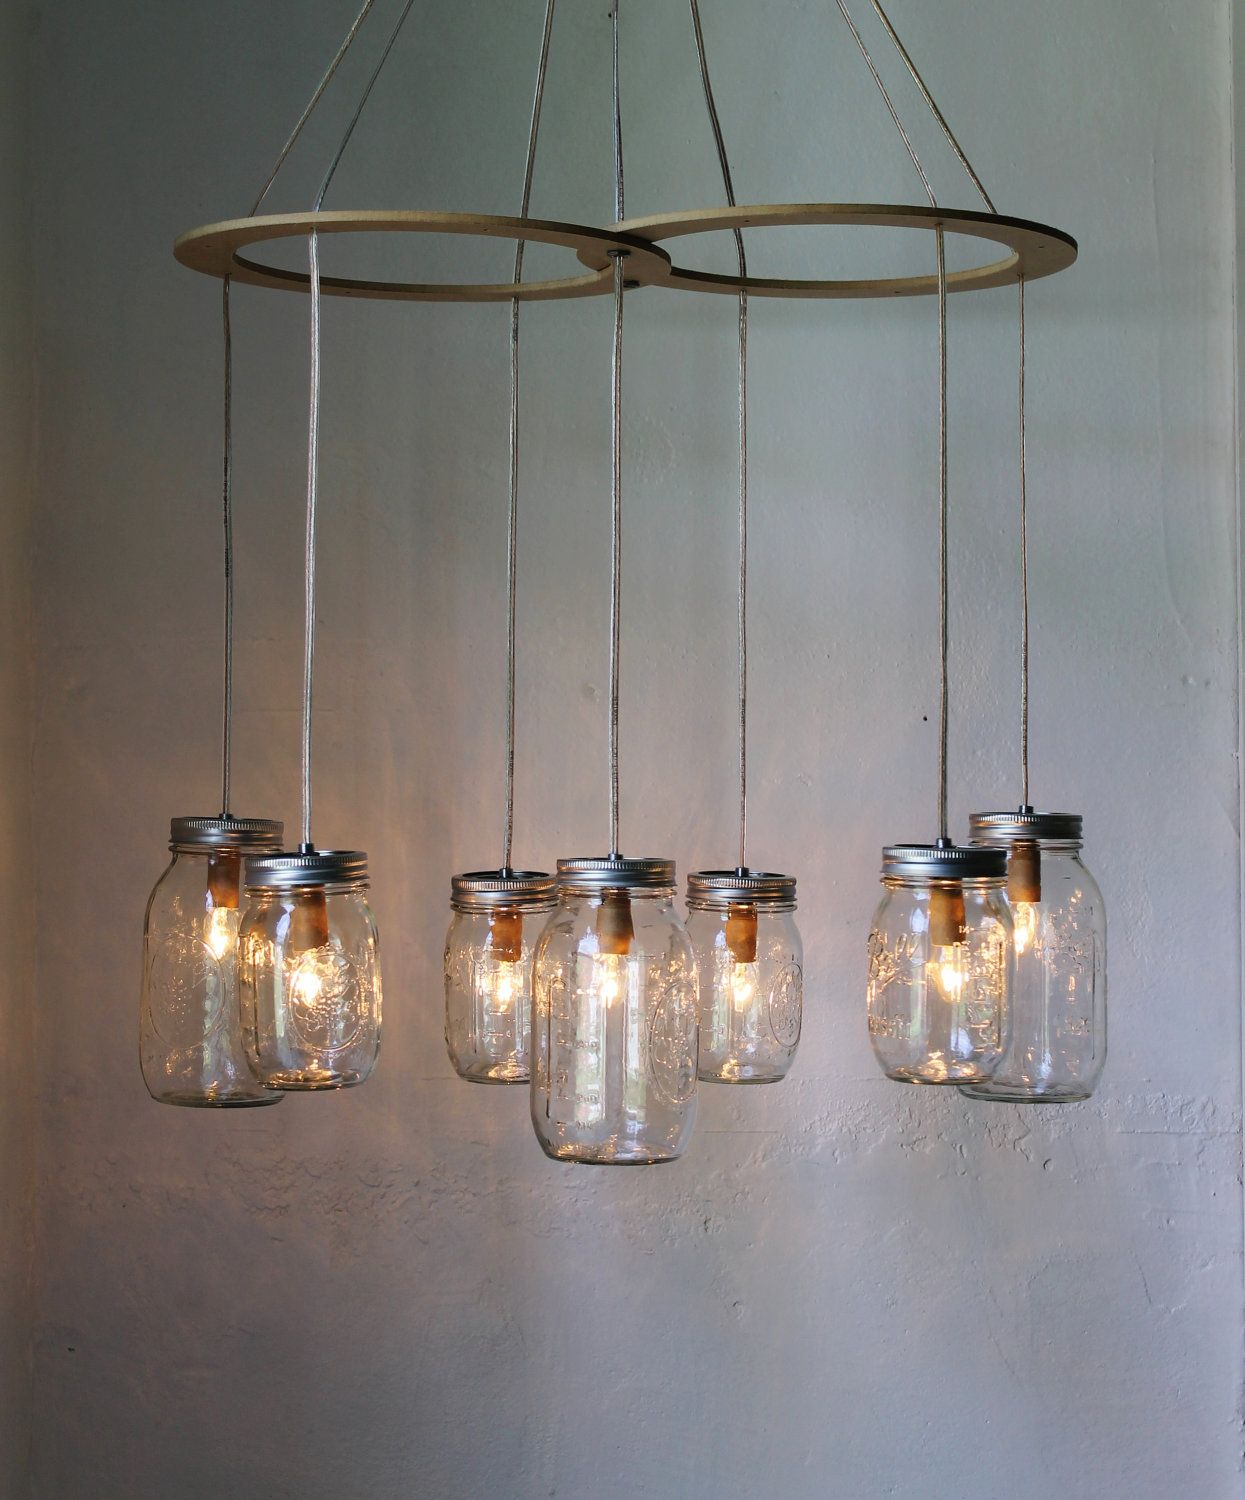 jar lighting fixtures. Outdoor Mason Jar Chandelier Lighting Fixtures O